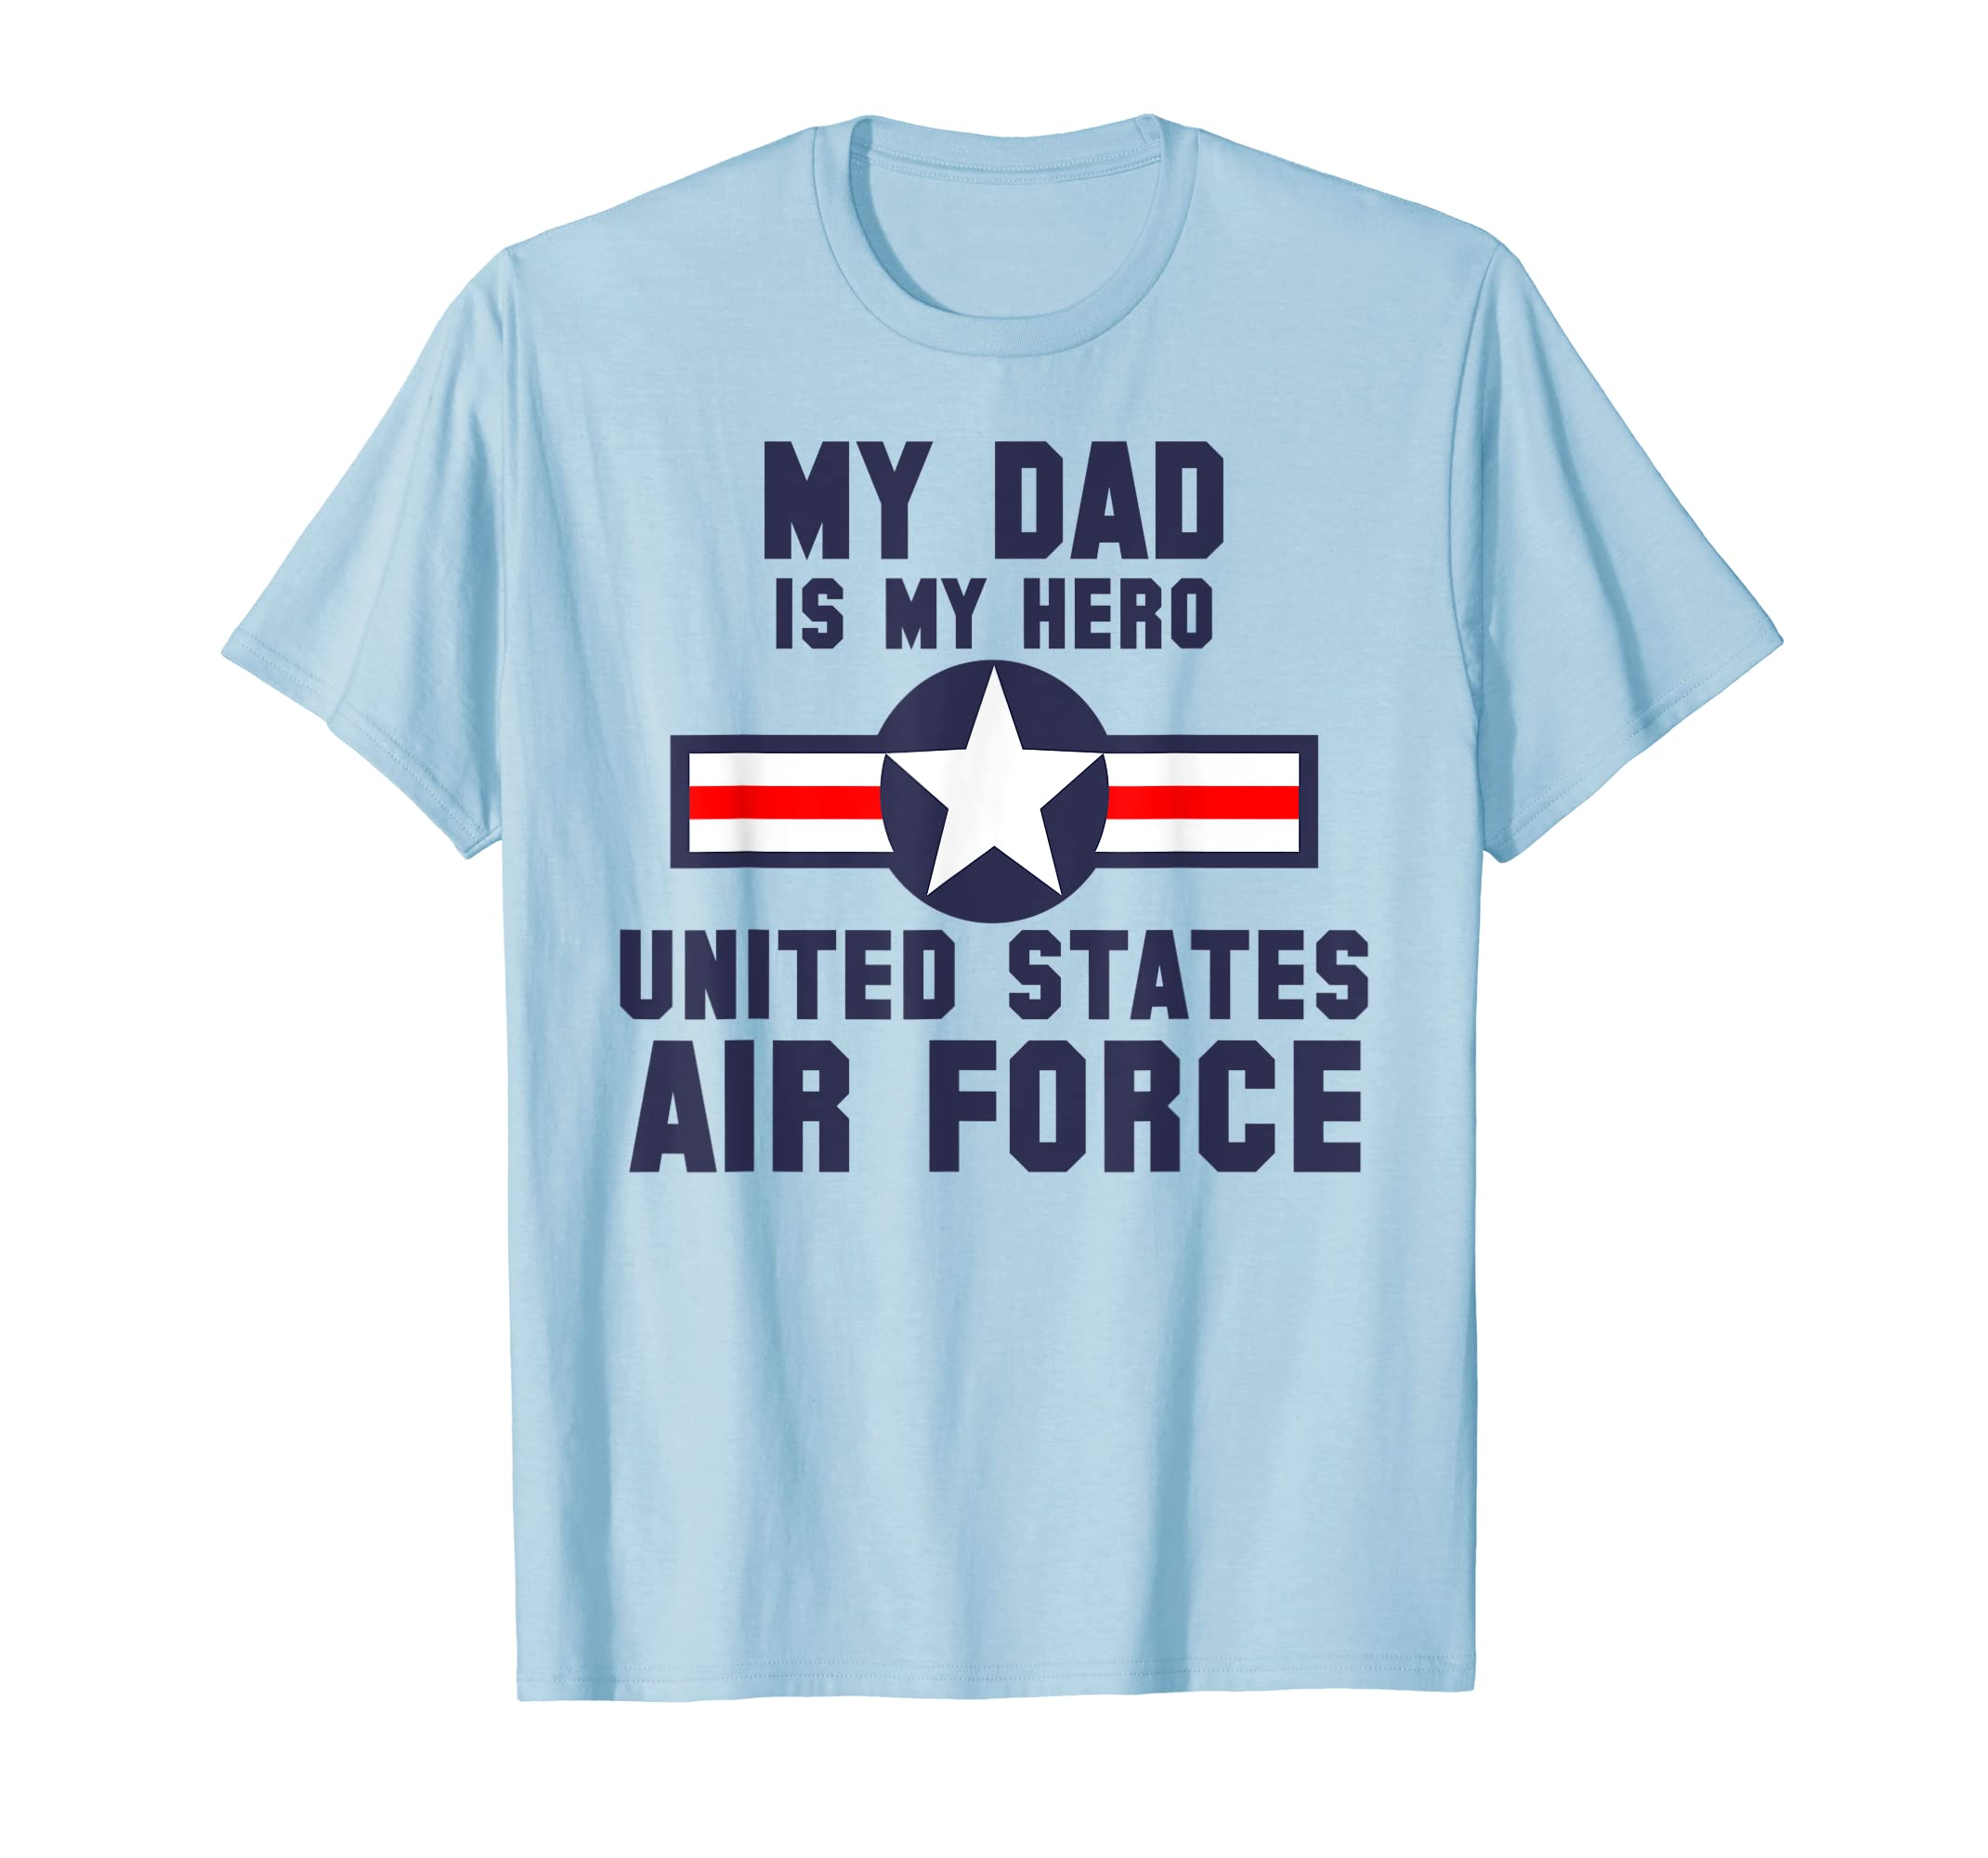 f9312185 Amazon.com: My Dad Is My Hero United States Air Force Vintage T-Shirt:  Clothing